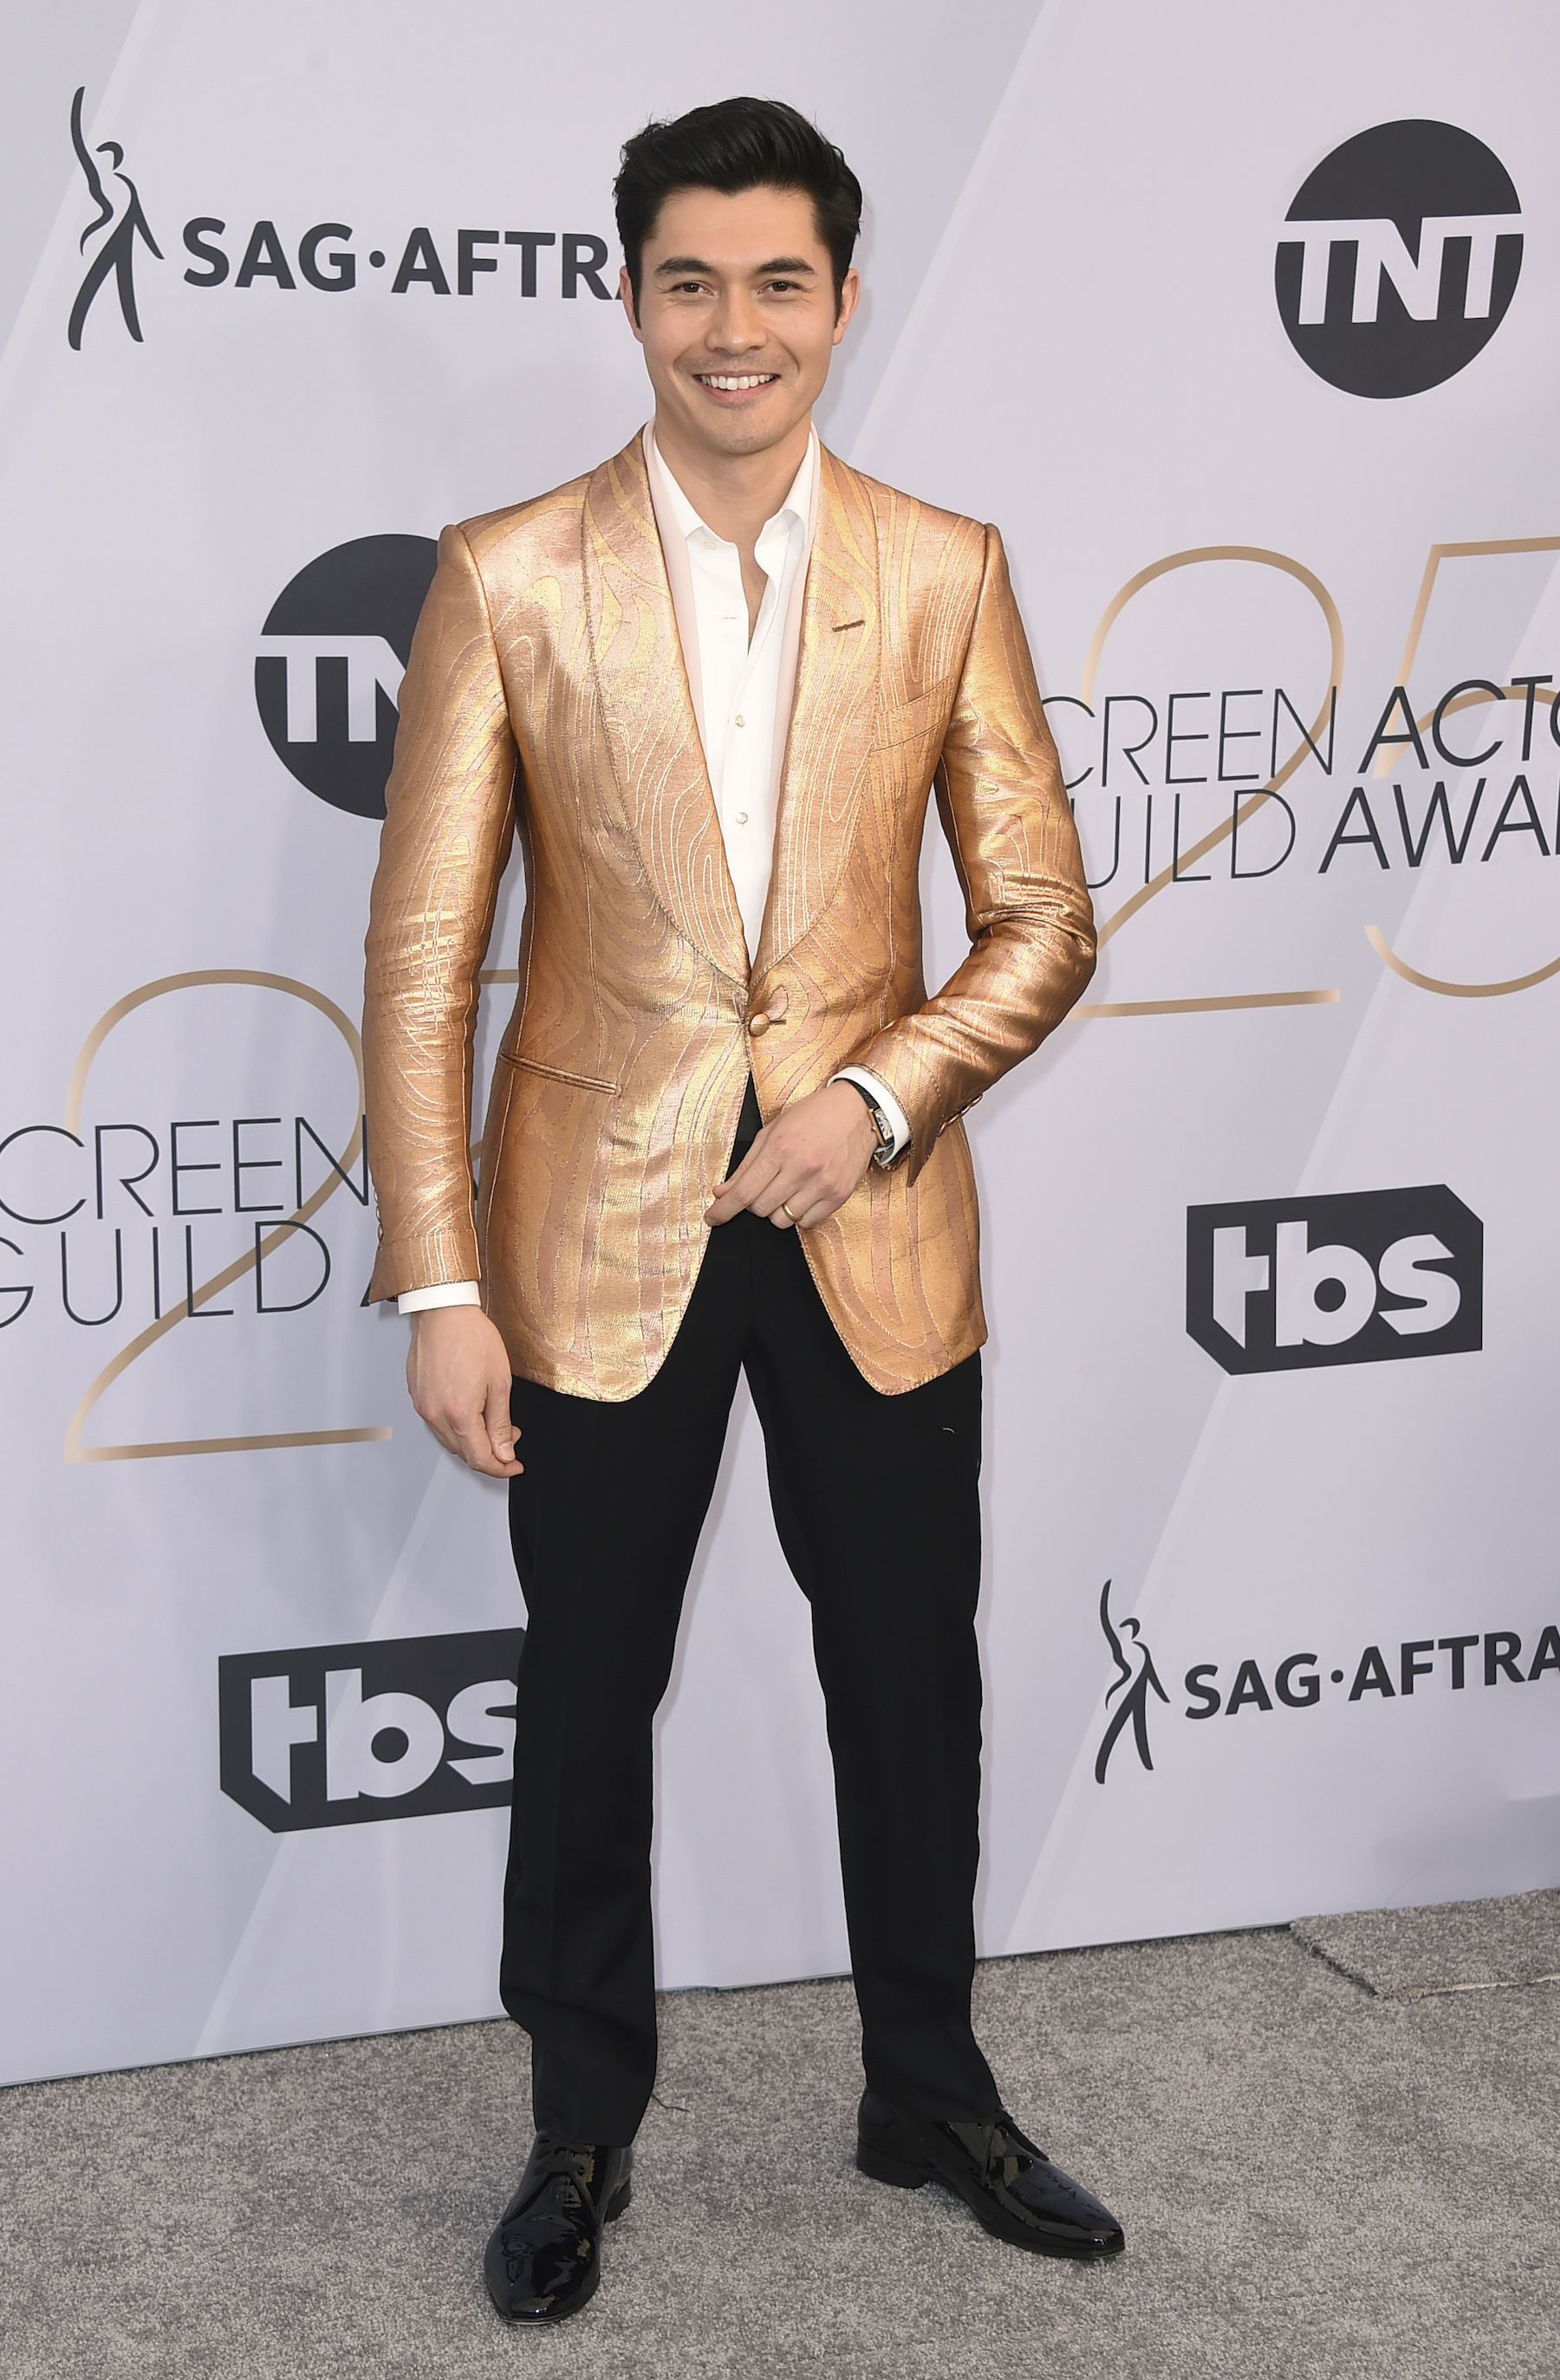 "<div class=""meta image-caption""><div class=""origin-logo origin-image ap""><span>AP</span></div><span class=""caption-text"">Henry Golding arrives at the 25th annual Screen Actors Guild Awards at the Shrine Auditorium & Expo Hall on Sunday, Jan. 27, 2019, in Los Angeles. (Jordan Strauss/Invision/AP)</span></div>"